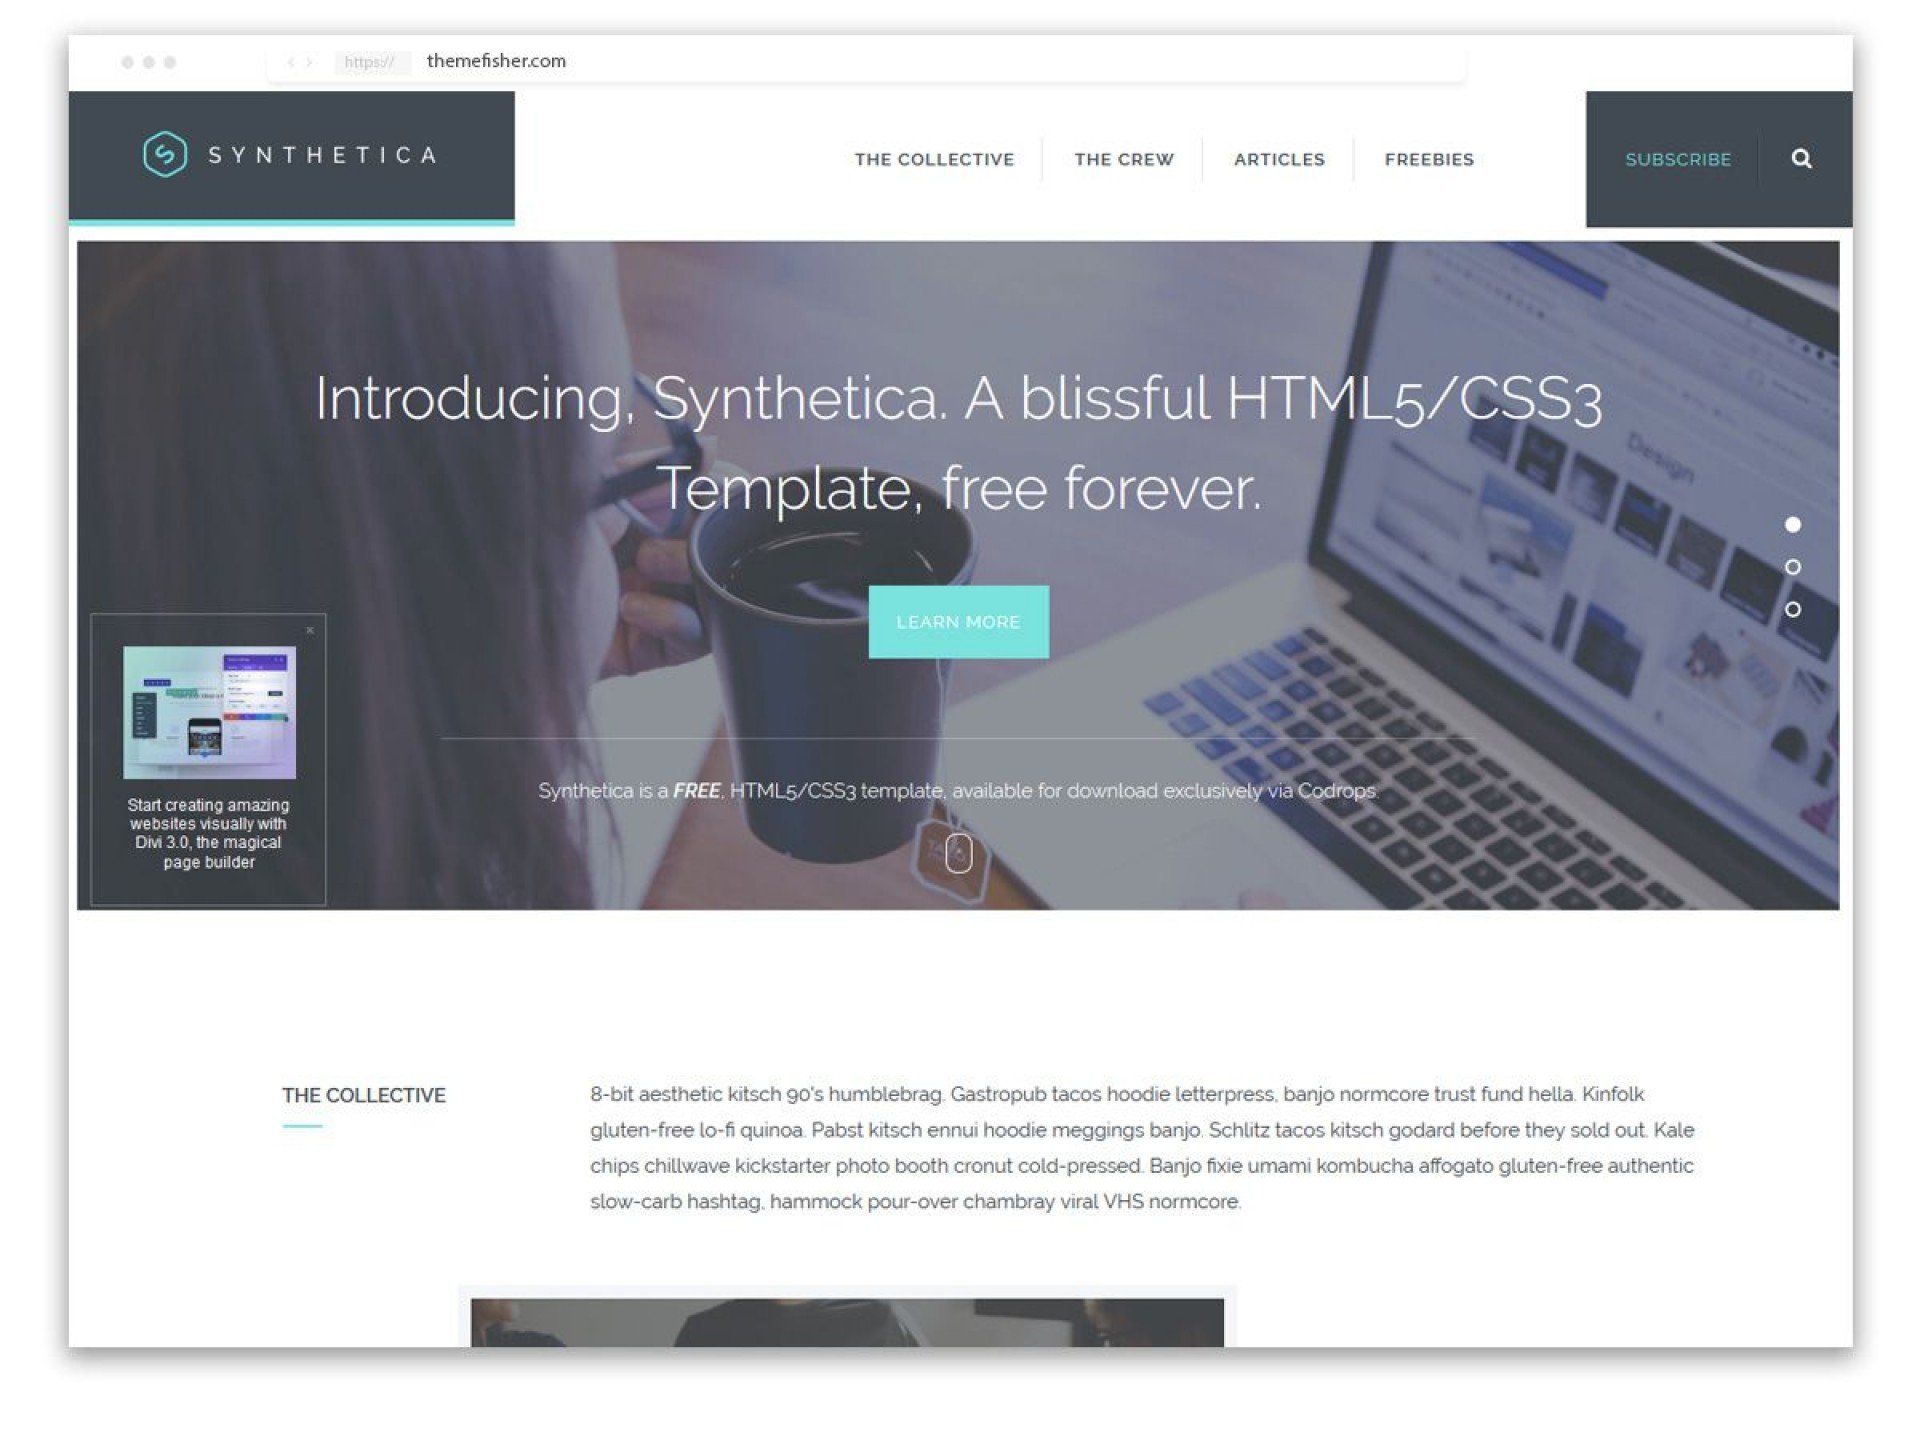 008 Impressive Project Management Html Template Free Download Inspiration 1920